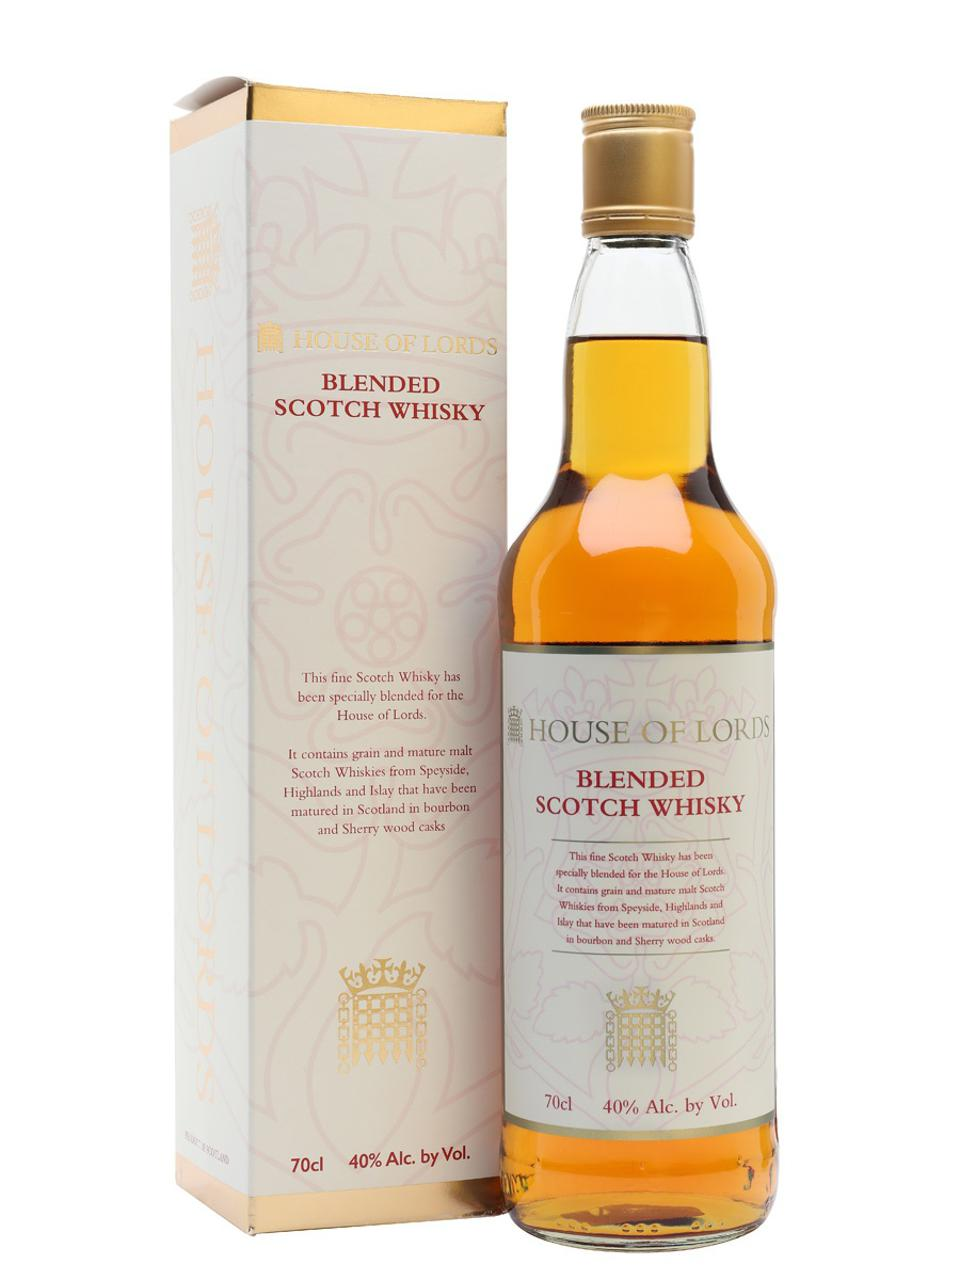 House of Lords, Blended Scotch Whisky